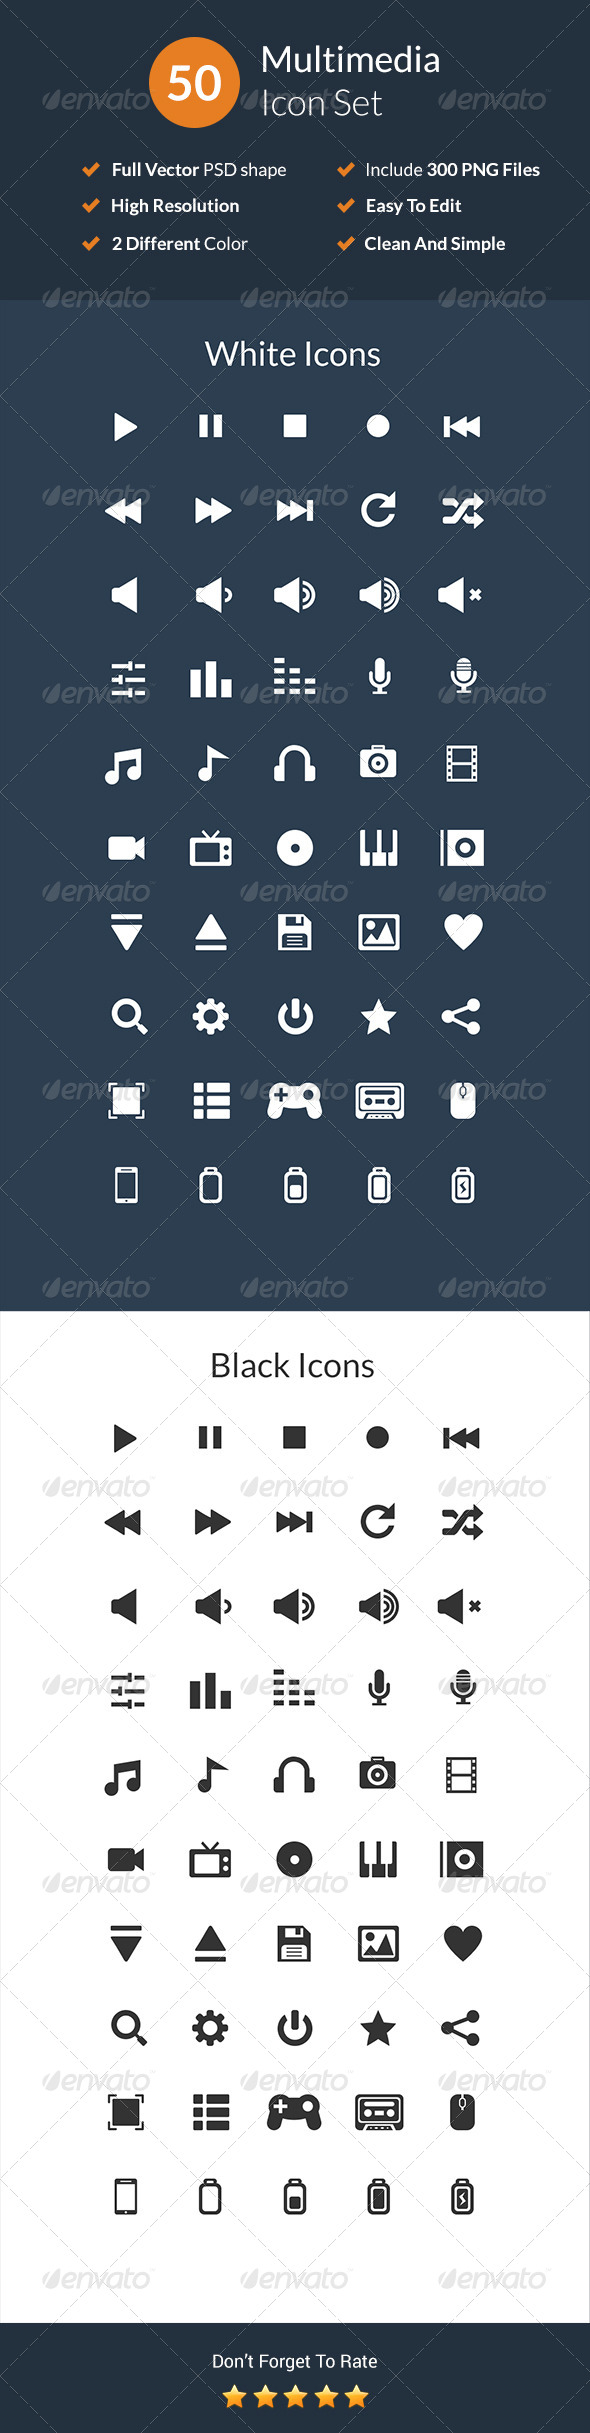 GraphicRiver 50 Multimedia Icon Set 7483291